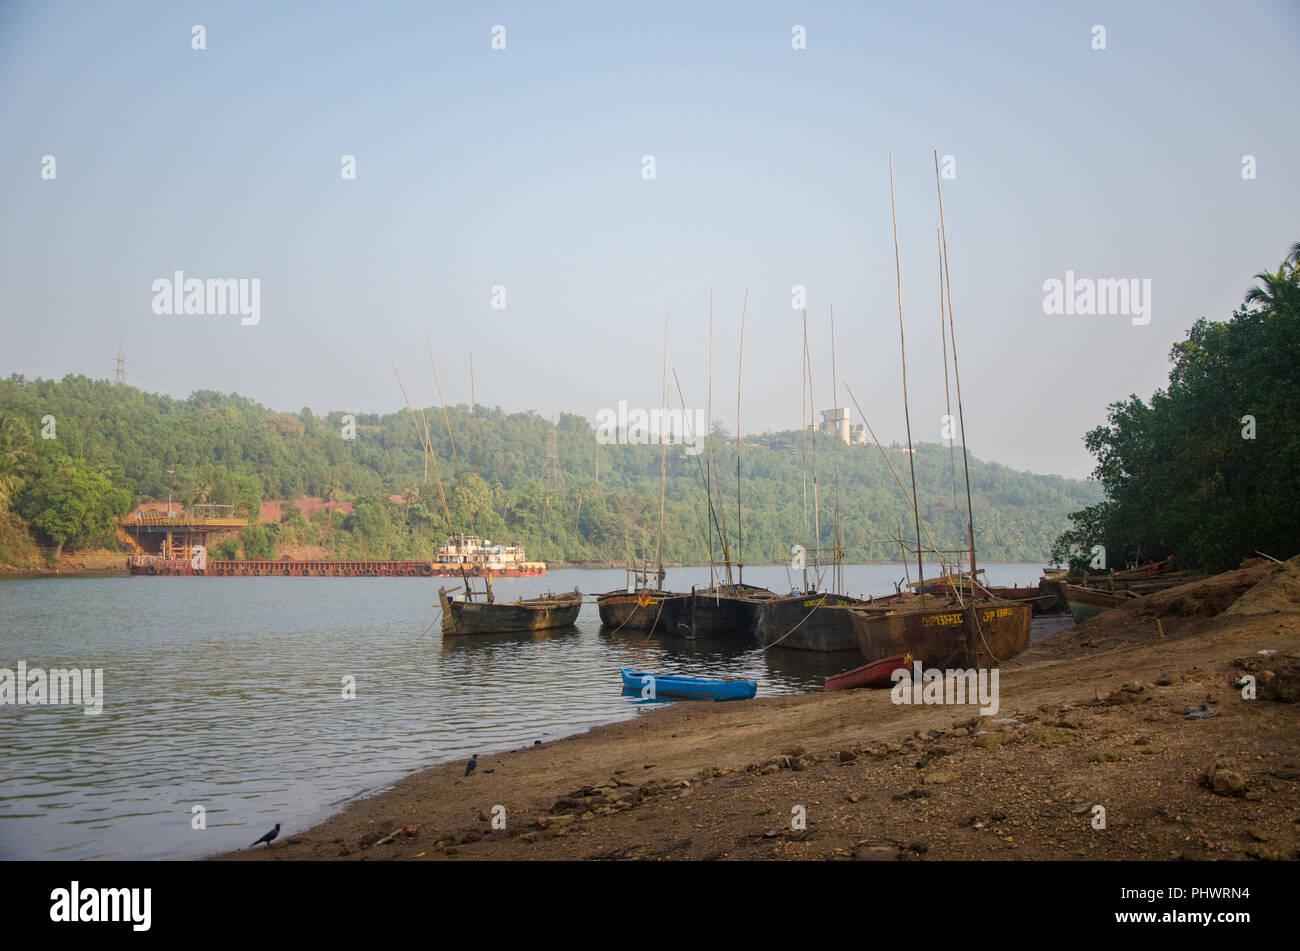 Boats used for mining sand from the Mandovi Riverbed near Volvoi Ferry Terminal, Savoi-Verem, Goa, India - Stock Image